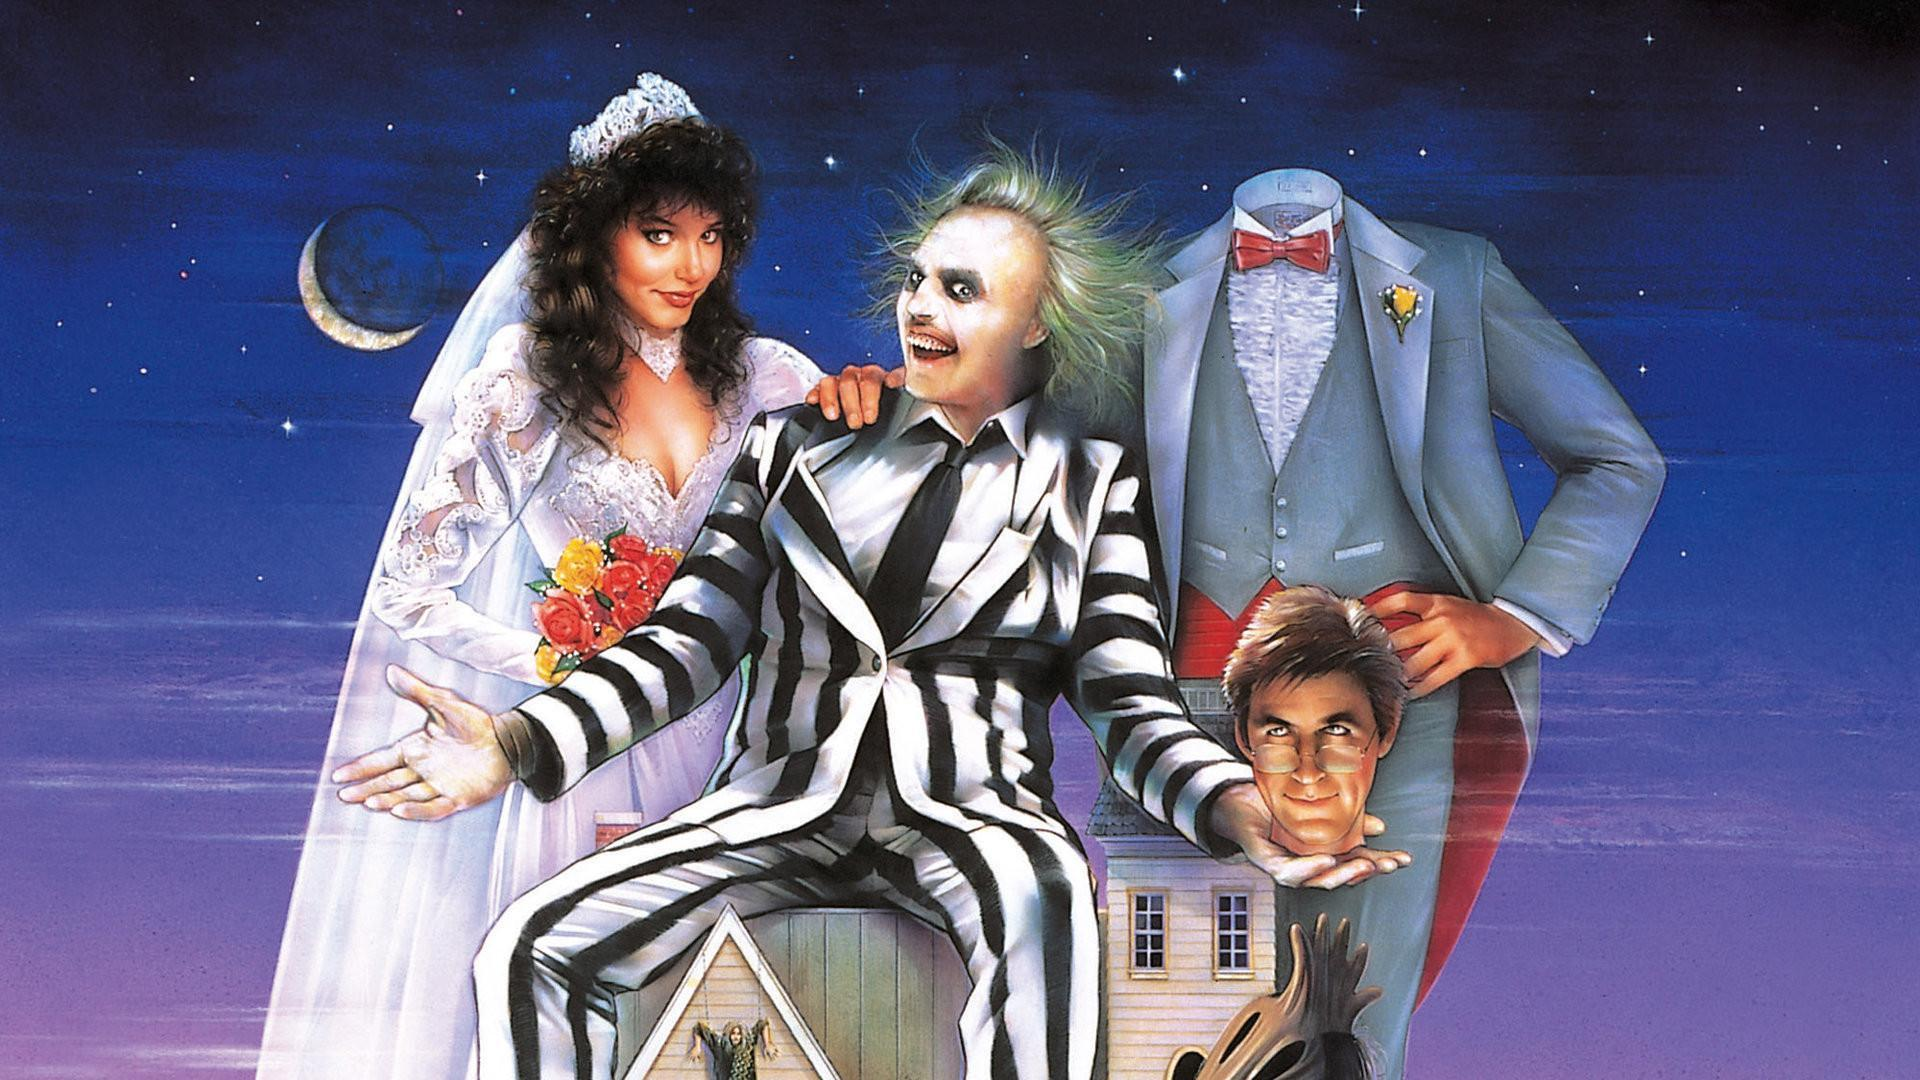 Beetlejuice 2 Could Be Returning With Tim Burton, Michael